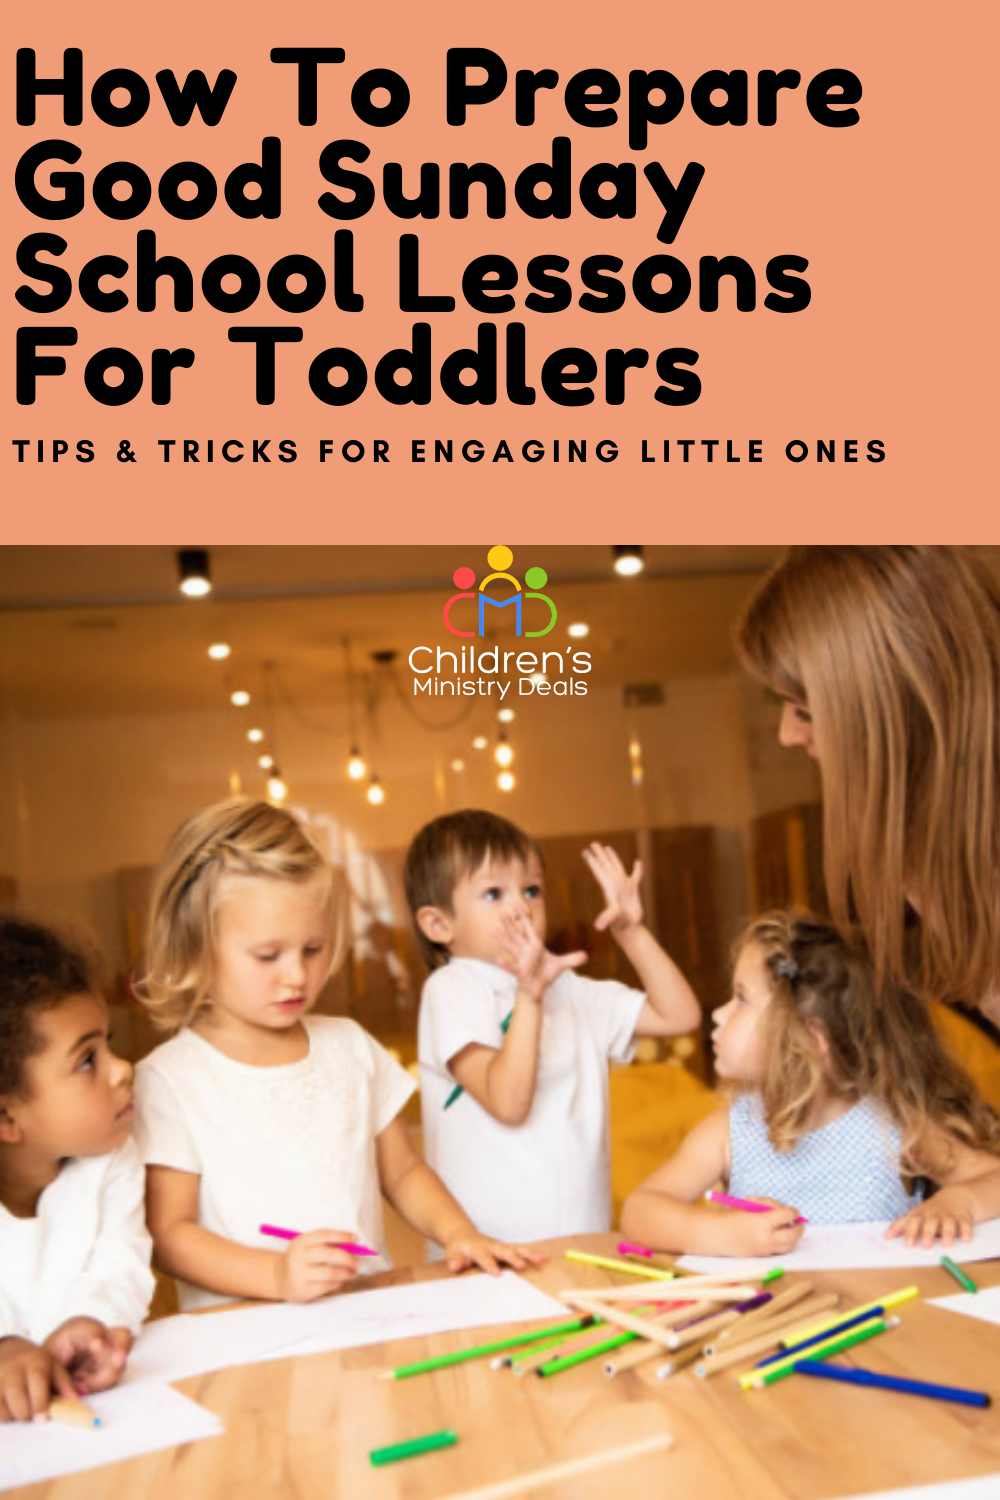 How To Prepare Good Sunday School Lessons For Toddlers